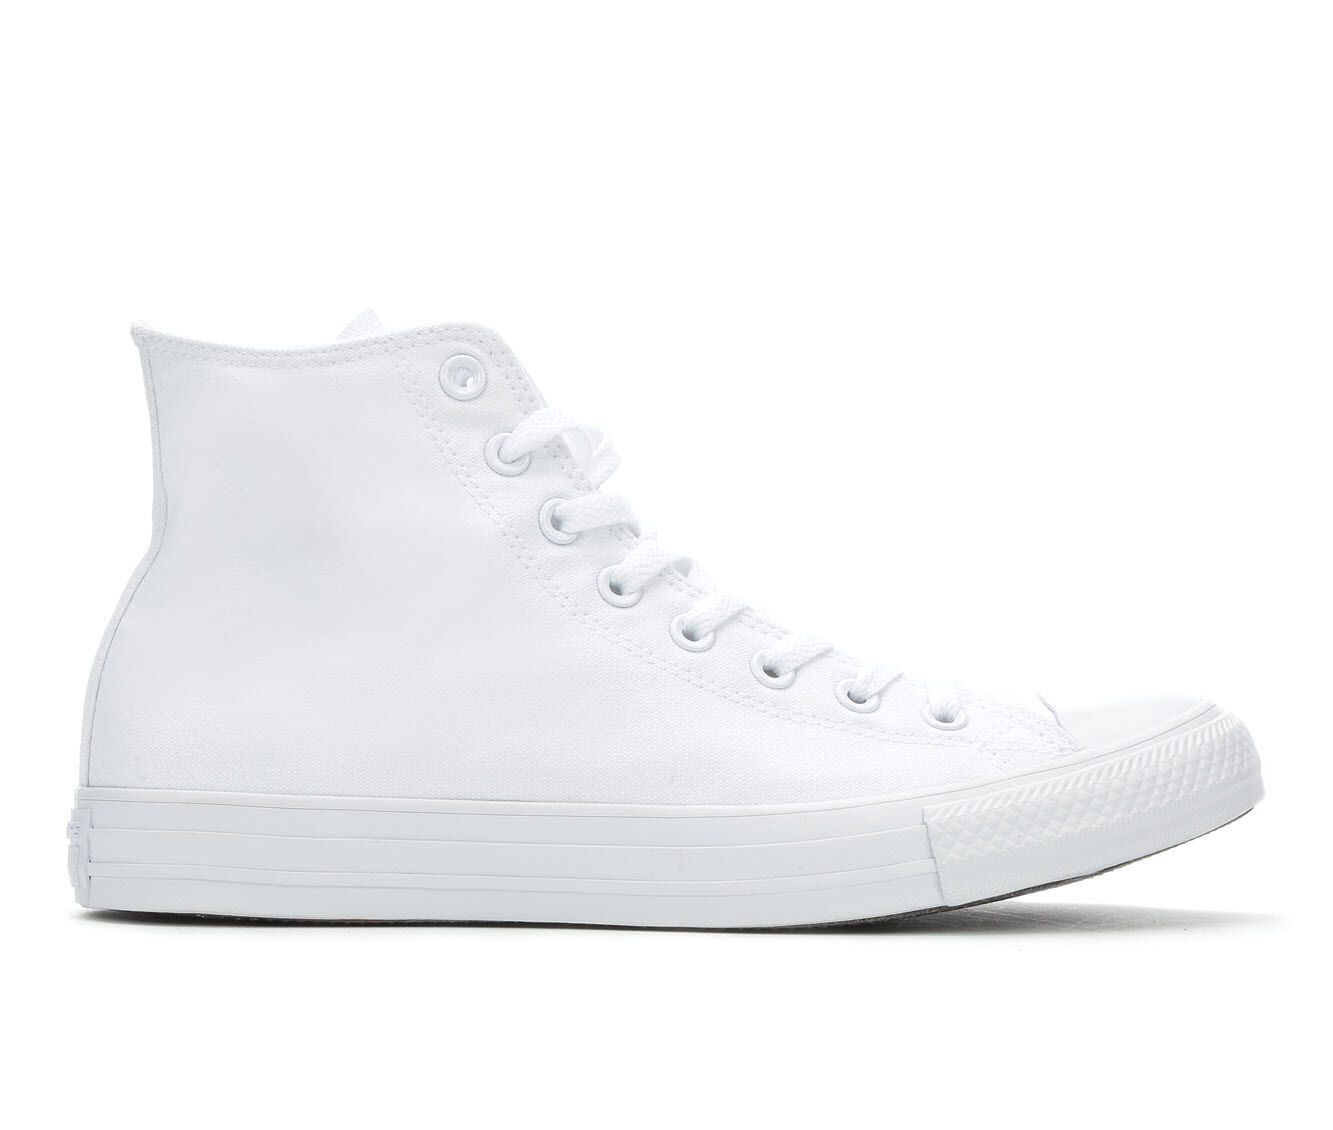 Exquisite Design Adults' Converse Chuck Taylor All Star Canvas Hi High Top Sneakers White Mono